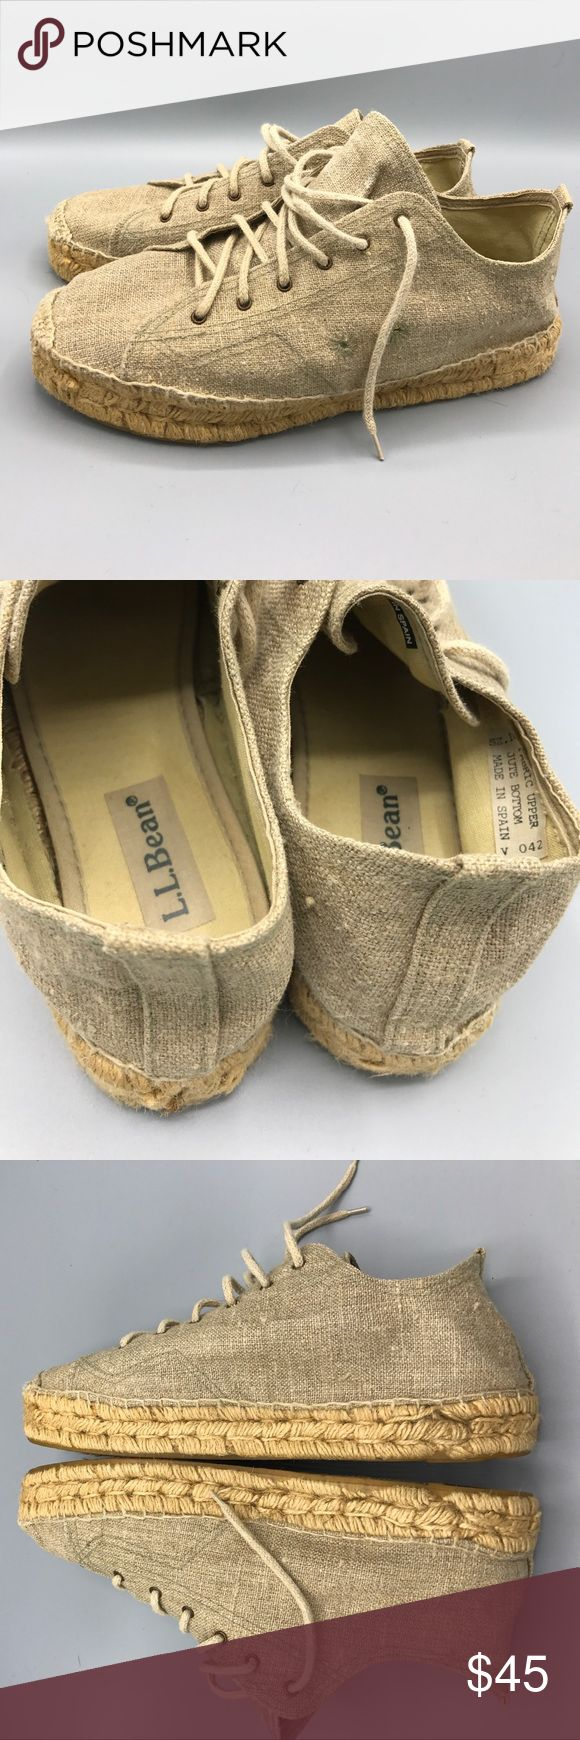 LL BEAN fabric and jute lace oxfords women's 10 LL BEAN  beige canvas/fabric upper on this Lace up oxford for casual to dressy fun!  Nearly new. Size 10 fit is true to size. Light and flexible comfort. L.L. Bean Shoes Flats & Loafers